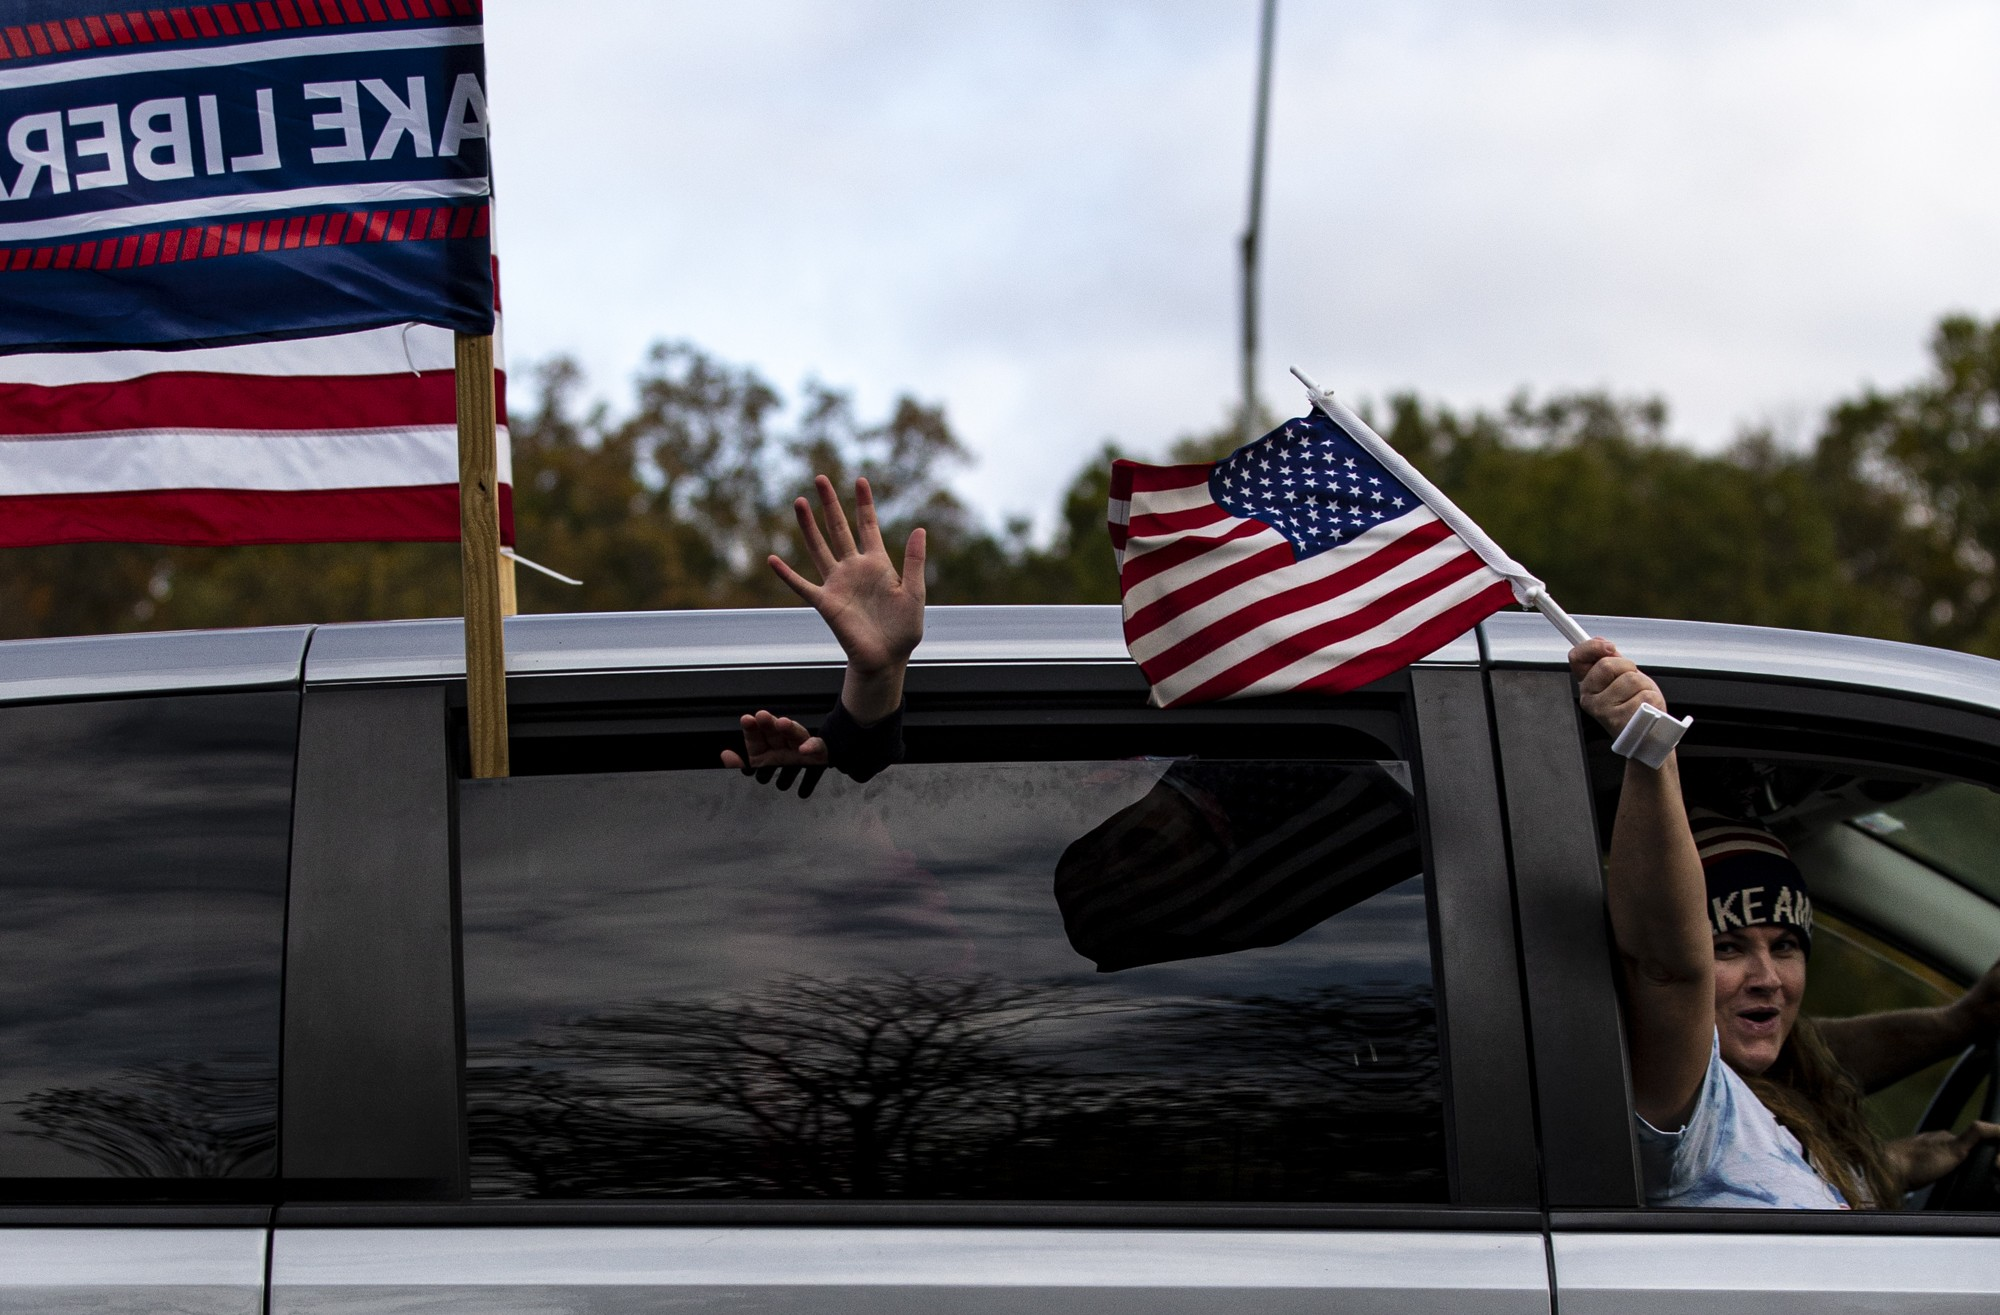 Over a thousand people took to I-275 around Cincinnati, OH on Saturday, Oct. 24, 2020 in support of President Trump's re-election on. This is the second time this campaign season that I-275 has hosted such an event, the first being on Saturday, Sept.12. (Jesse Jarrold-Grapes | For The Post)